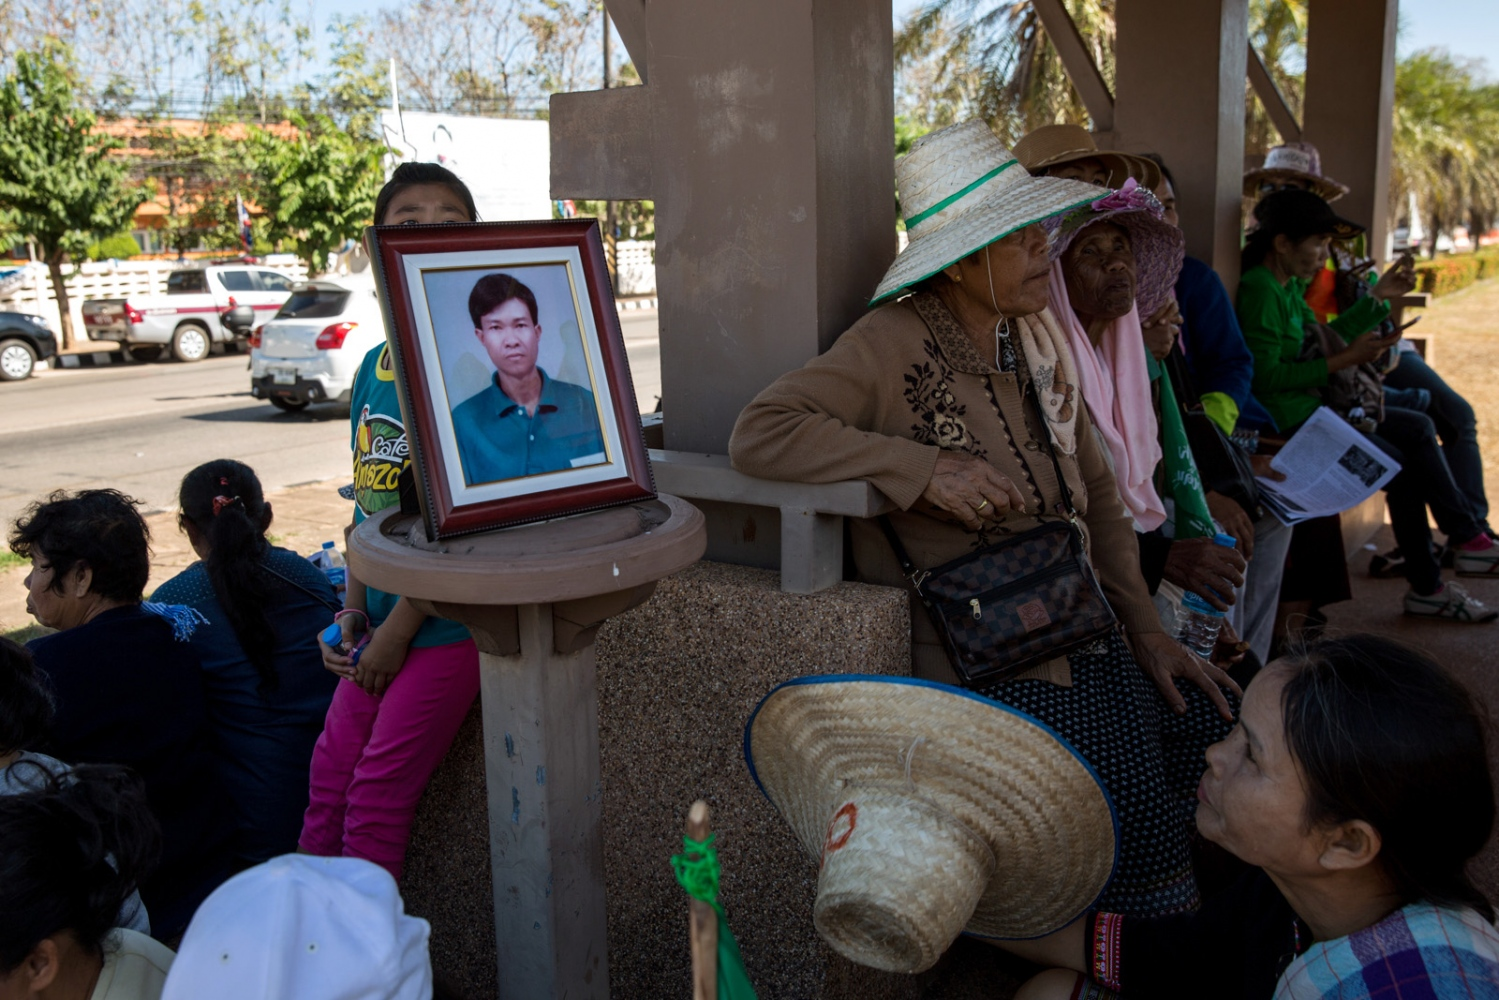 A portrait of Nujiam Paisita, who was tragically killed in a car accident the day before the beginning of the walk is placed carefully during a rest stop. The villagers and family members quickly held a ceremony for his death at his home and decided to carry his portrait every step of the way in his honour.